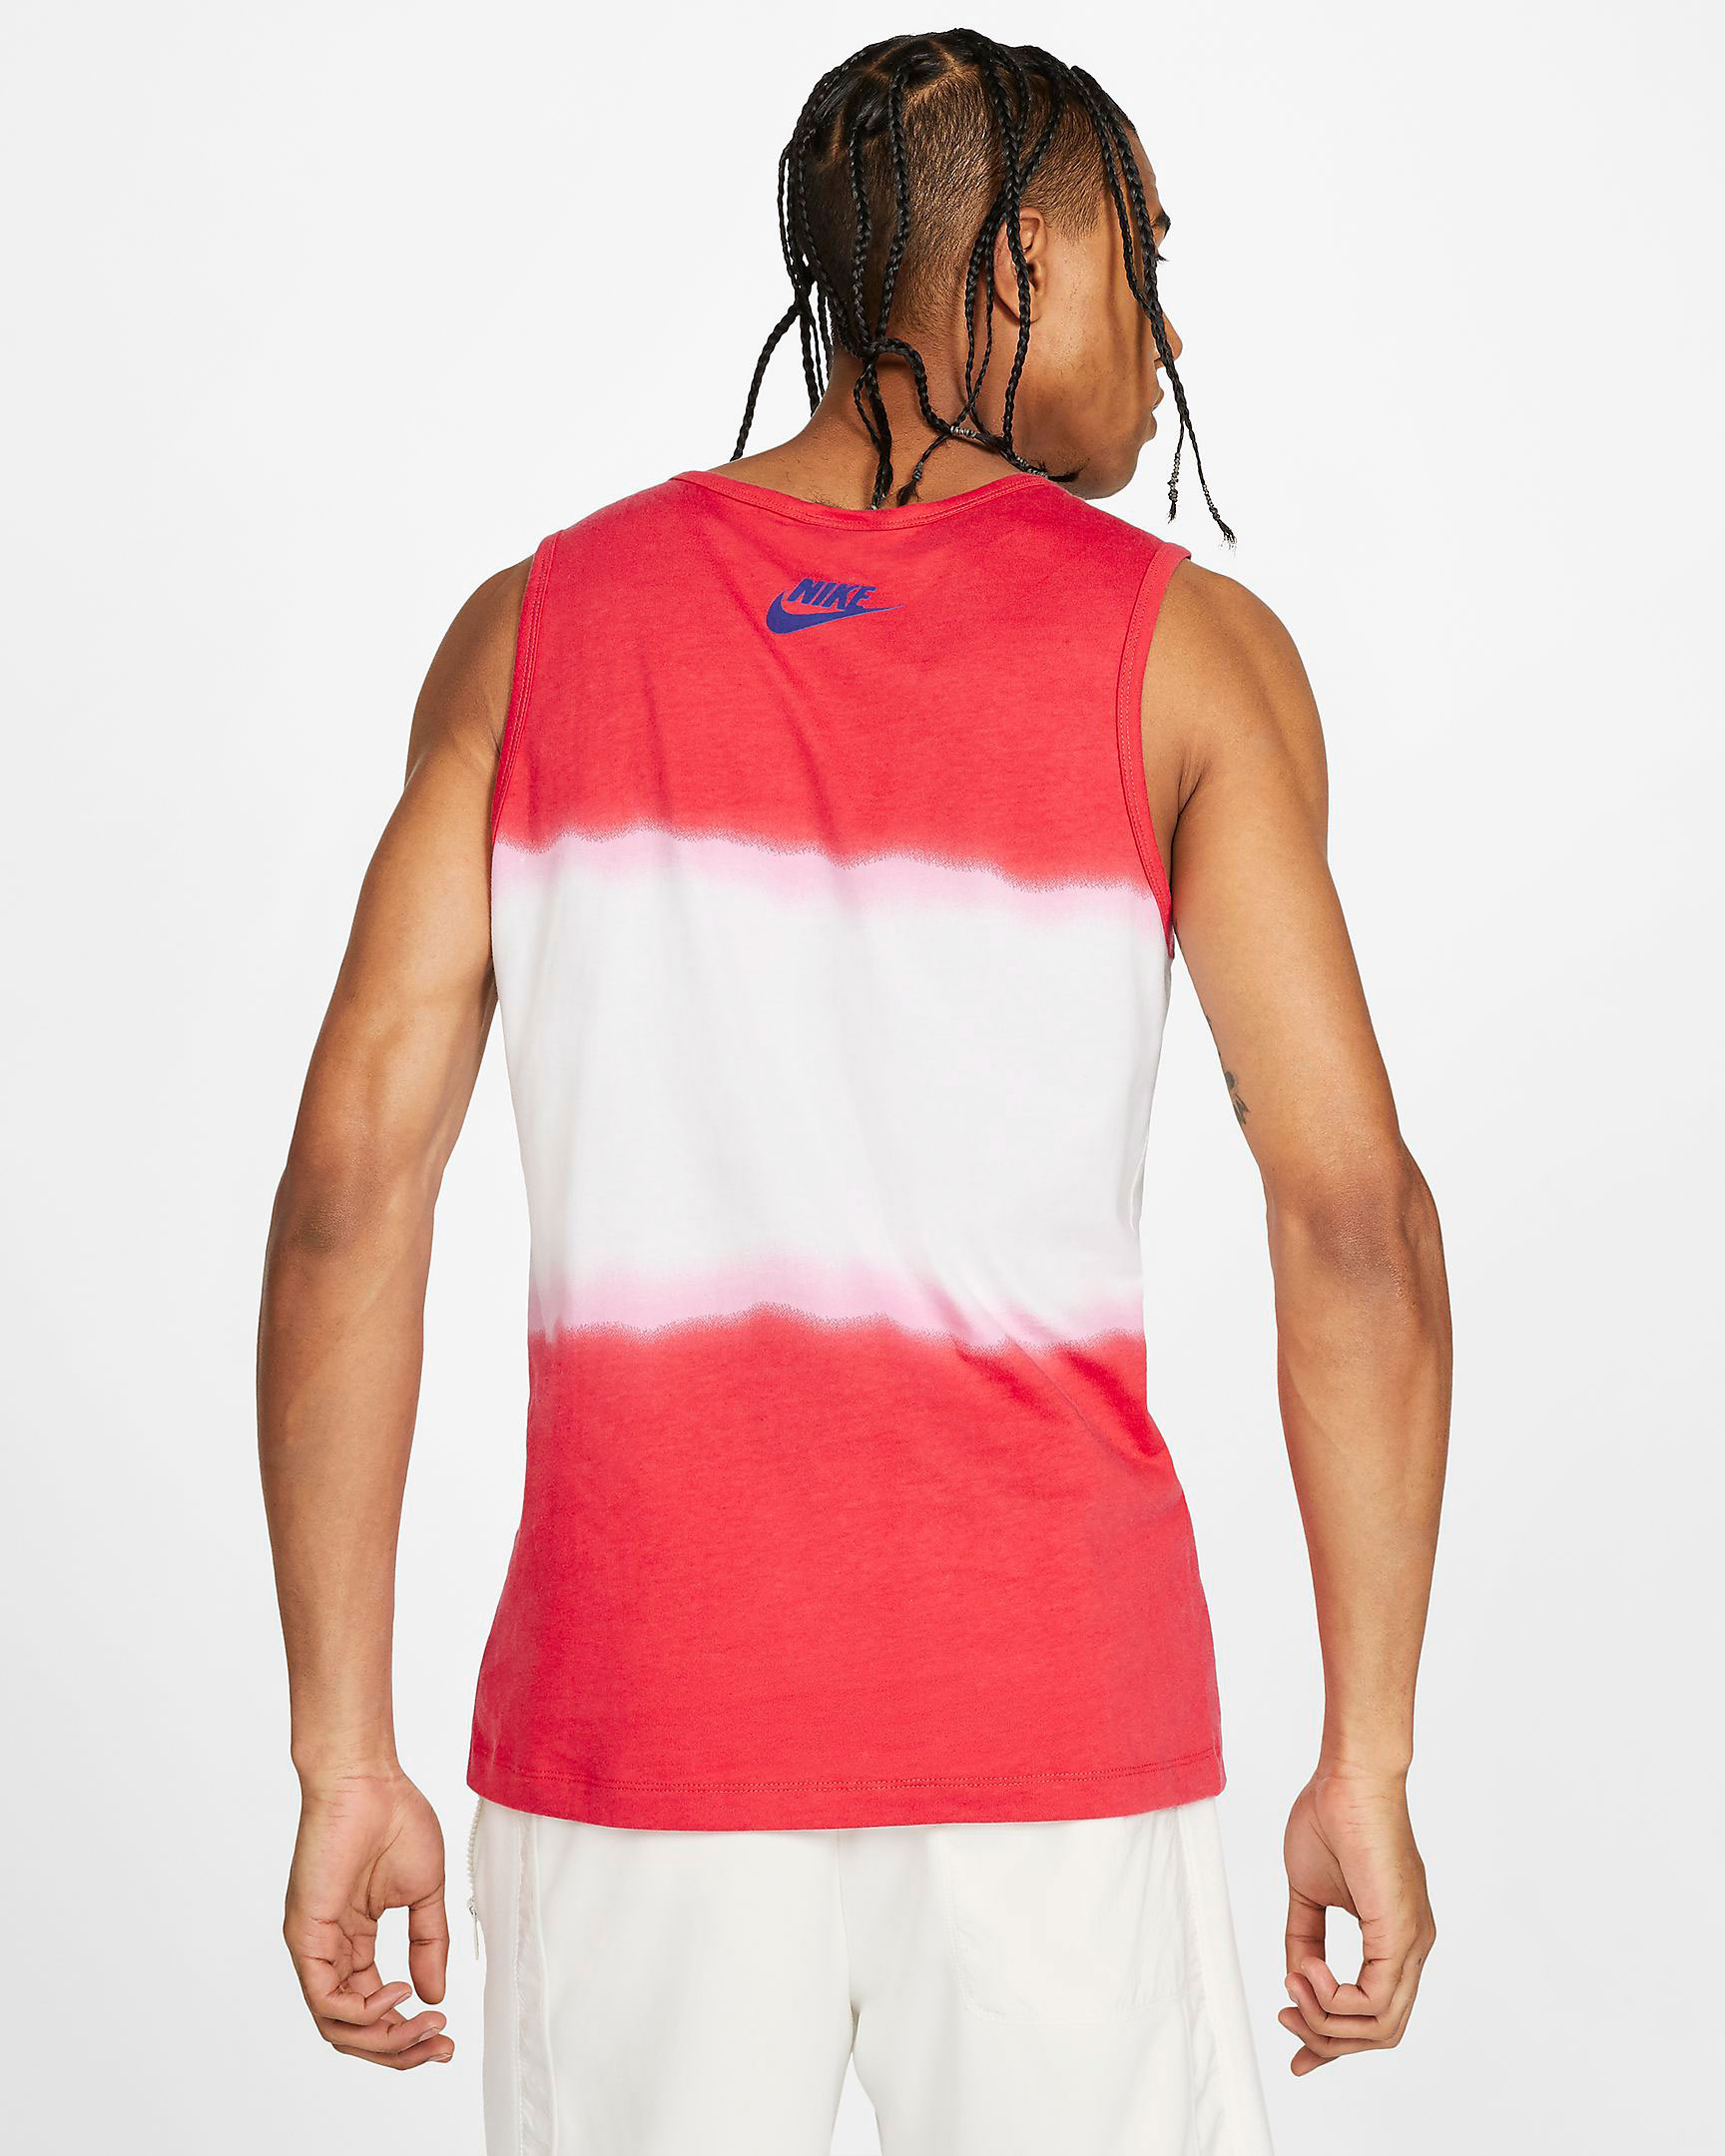 nike-kybrid-s2-what-the-usa-tank-top-2